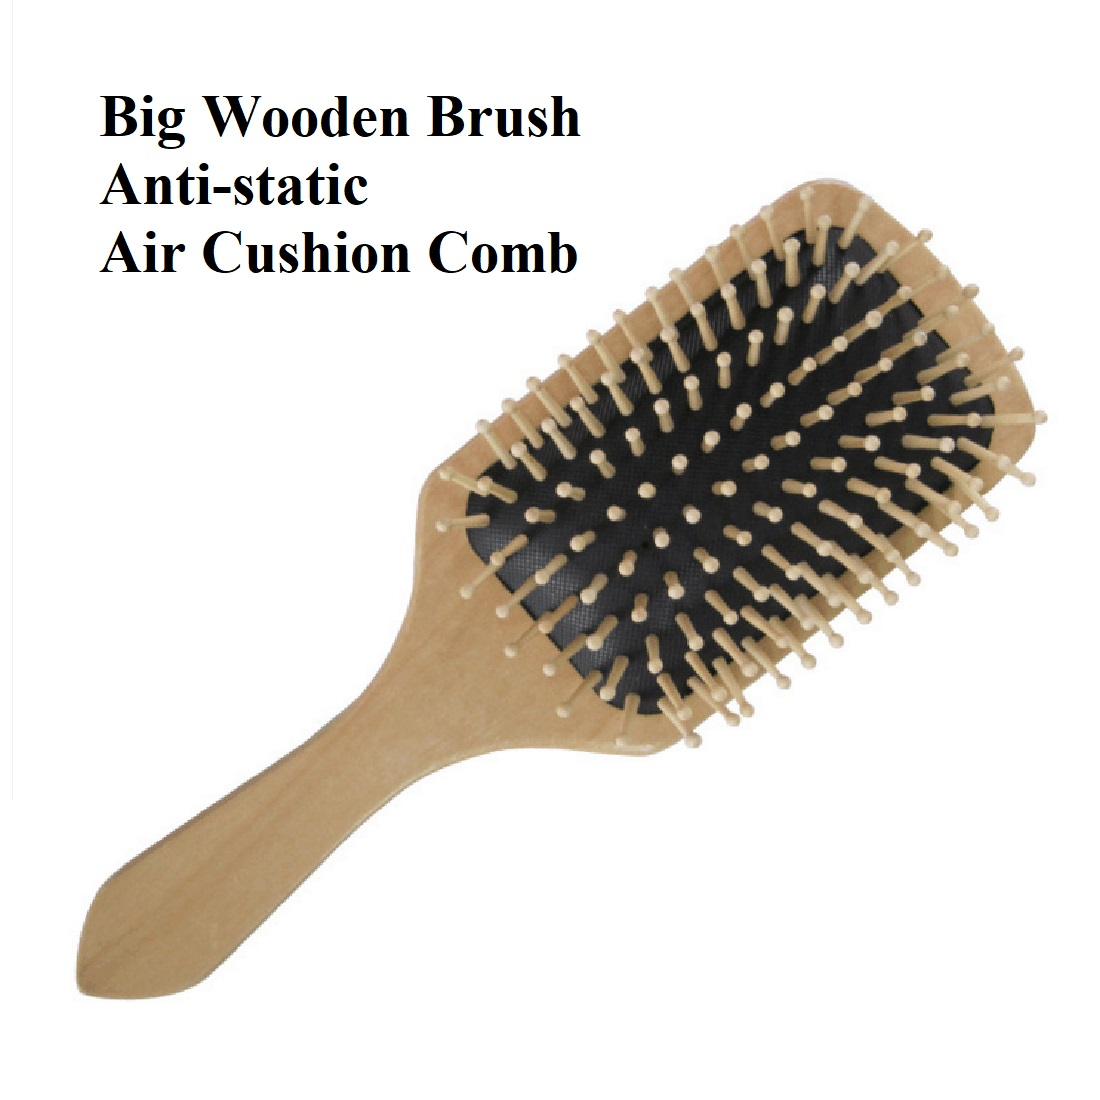 Big Wooden Brush Anti-static Air Cushion Health Hair Care Spa Massage Comb Lotus Comb